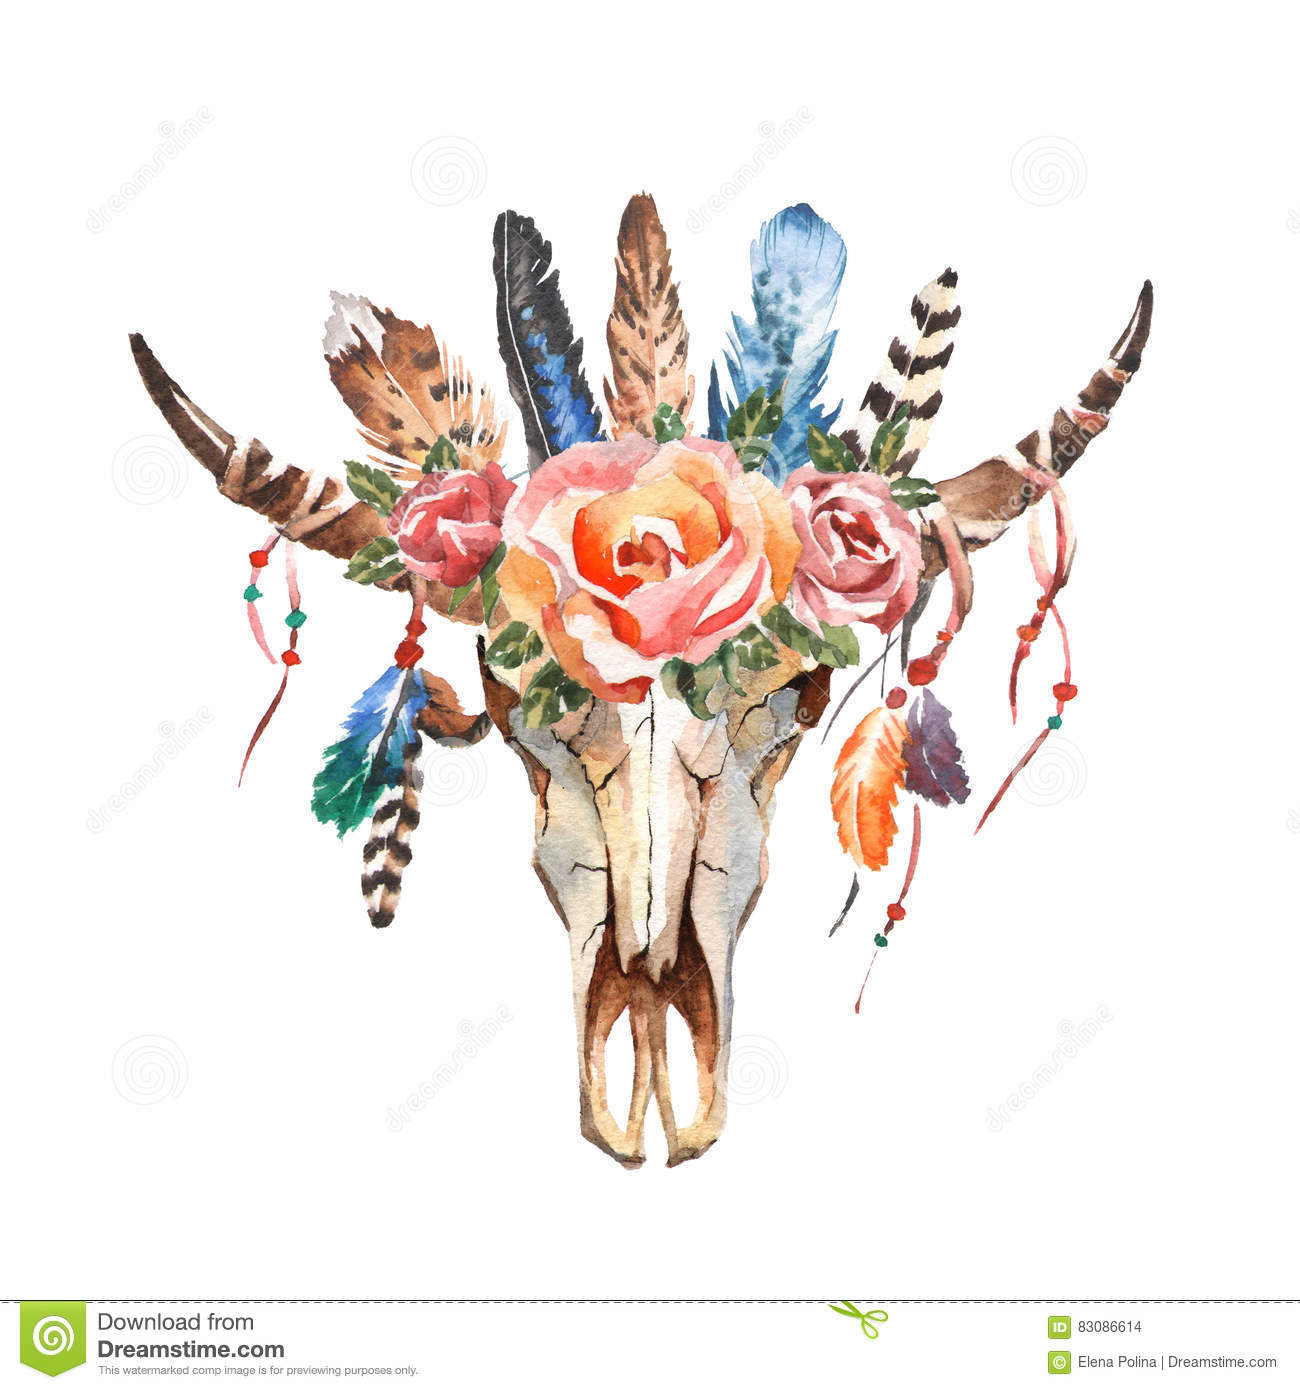 Watercolor Boho Chic Image Flowers Feathers Animal Elements